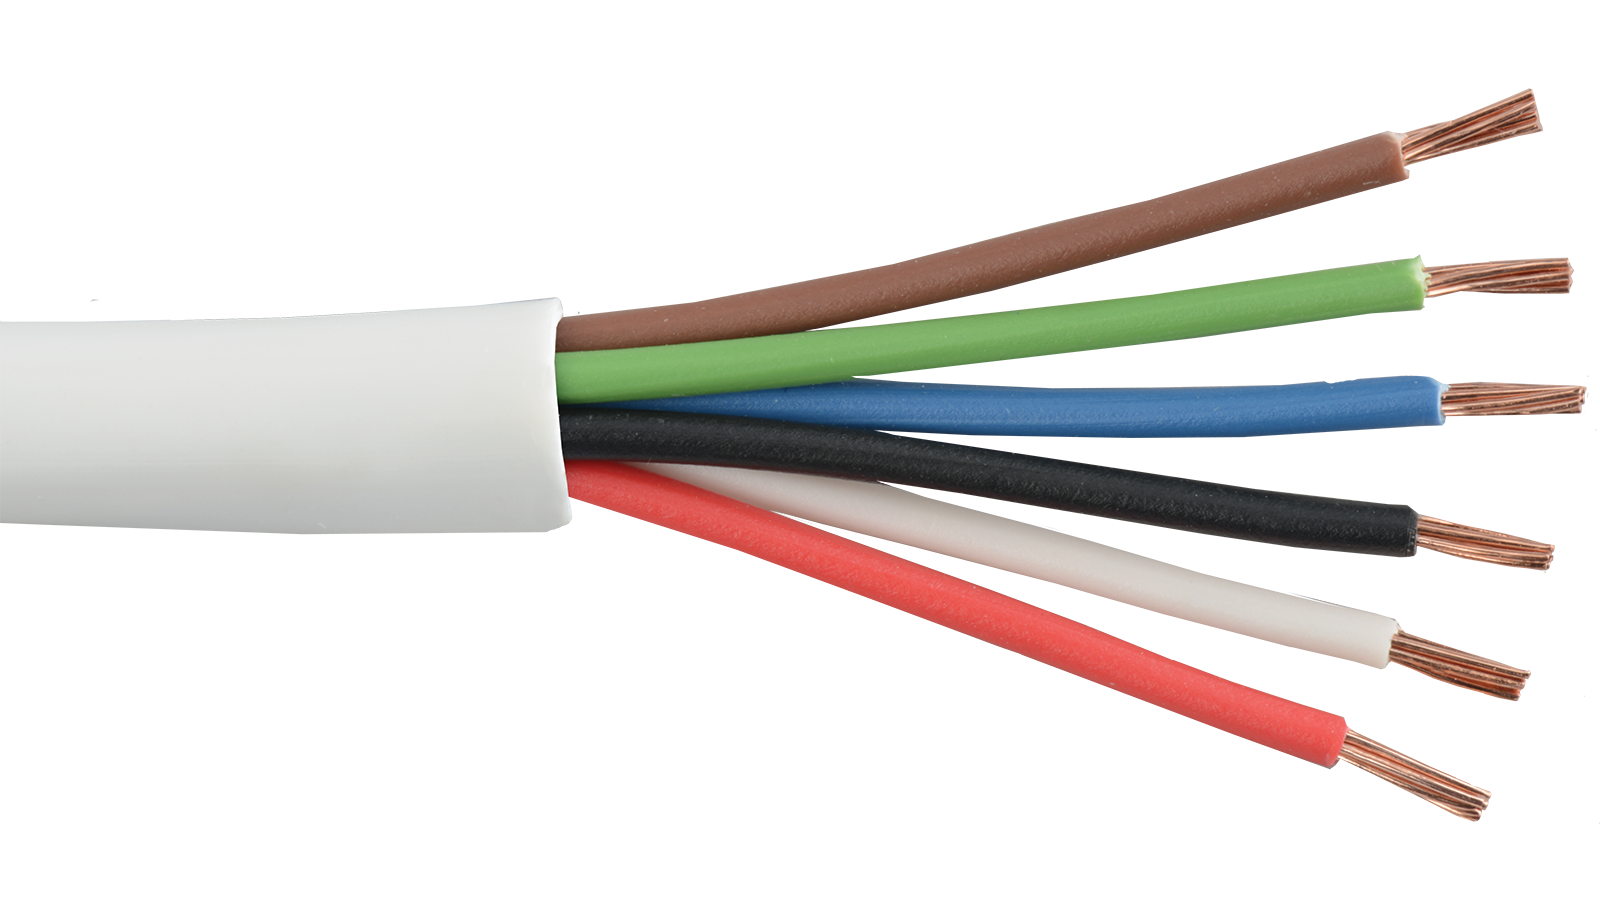 22 6c Gry Commercial Grade General Purpose Awg 6 Conductor Cable Structured Wiring Distribution Modules Free Download